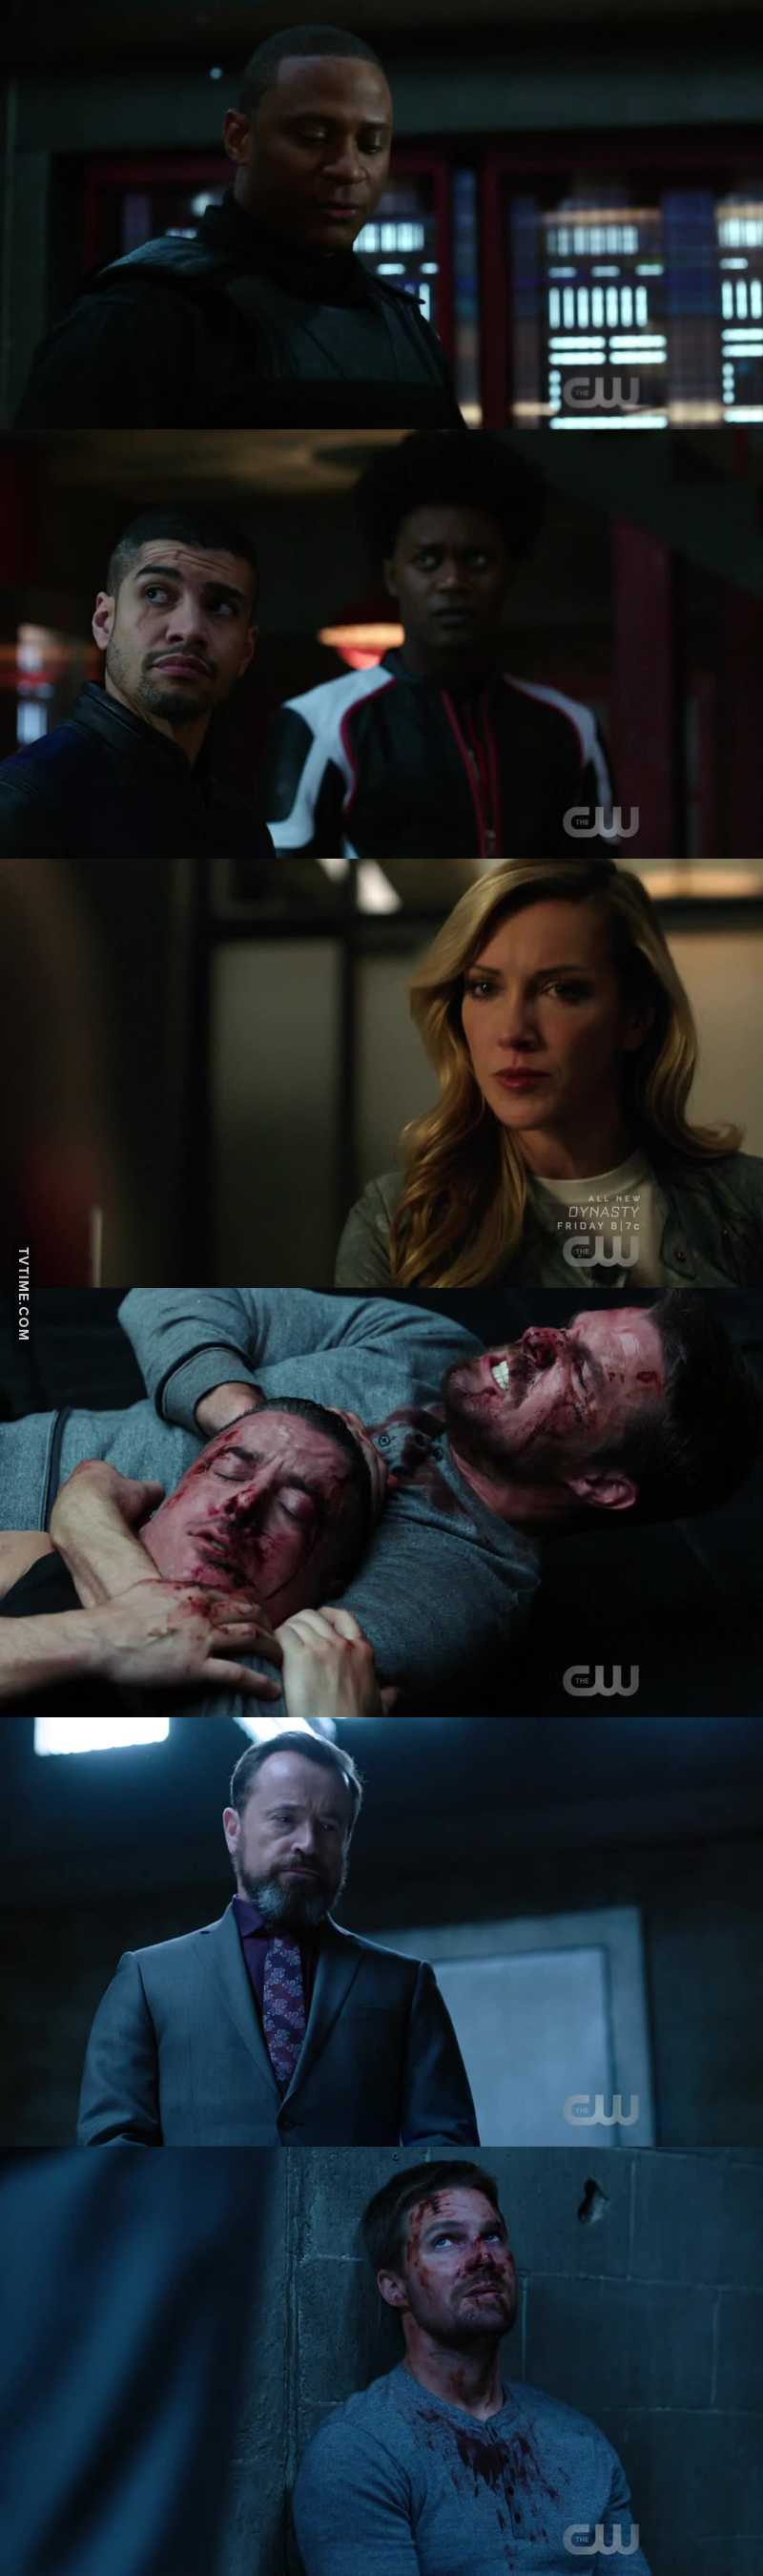 "So, first they had Felicity say sorry, now John. The next will be Oliver??? ARE YOU FUCKING KIDDING ME, ARROW WRITERS??? These asshole caused this whole thing. they are making me hate those three ""NTA"" even more now. And all this Laurel ""now I'm with Diaz bc I'm scared"" doesn't make ANY sense. she is a metahuman. she could easly take out Diaz by herself.  She singlehandedly beat the Flash once. I could have understood if it was Zoom or someone with powers but this is not the case. Also ""Dragon is a monster"" say the woman who killed many innocent people just for fun LMAO. even when Cayden James told her not to kill anyone she did it anyway, soooo...i mean, i understand she cares about Quentin and probably they want to redemer her but the way they are doing it is completely incoherent with her character. Anyway, I'm really liking Diaz as villain now. probably his fight with Oliver was the best scene of the episode. And I loved all Anatoly/Oliver scenes"